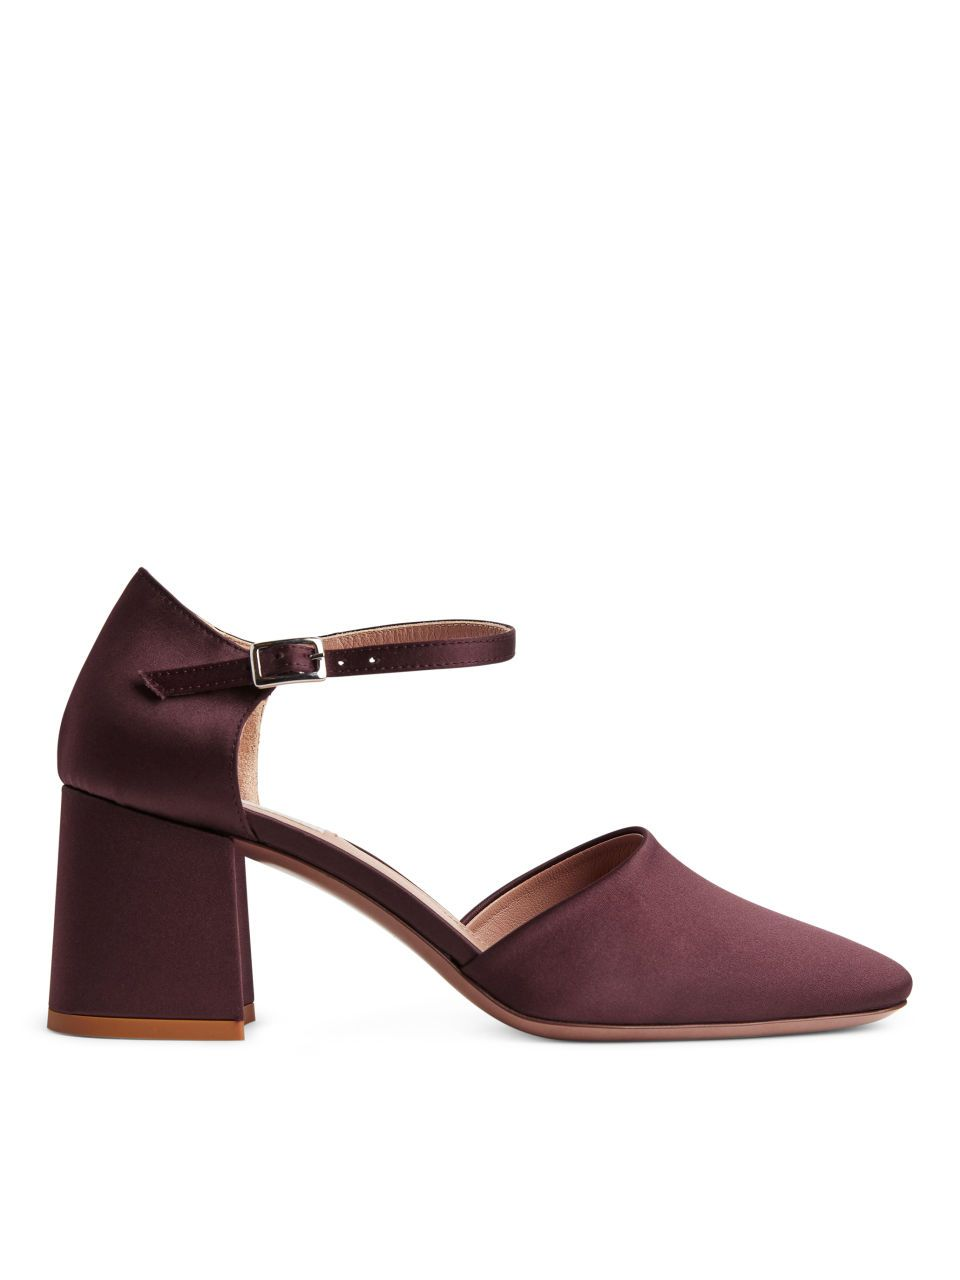 Mid heel shoes, Leather boots heels